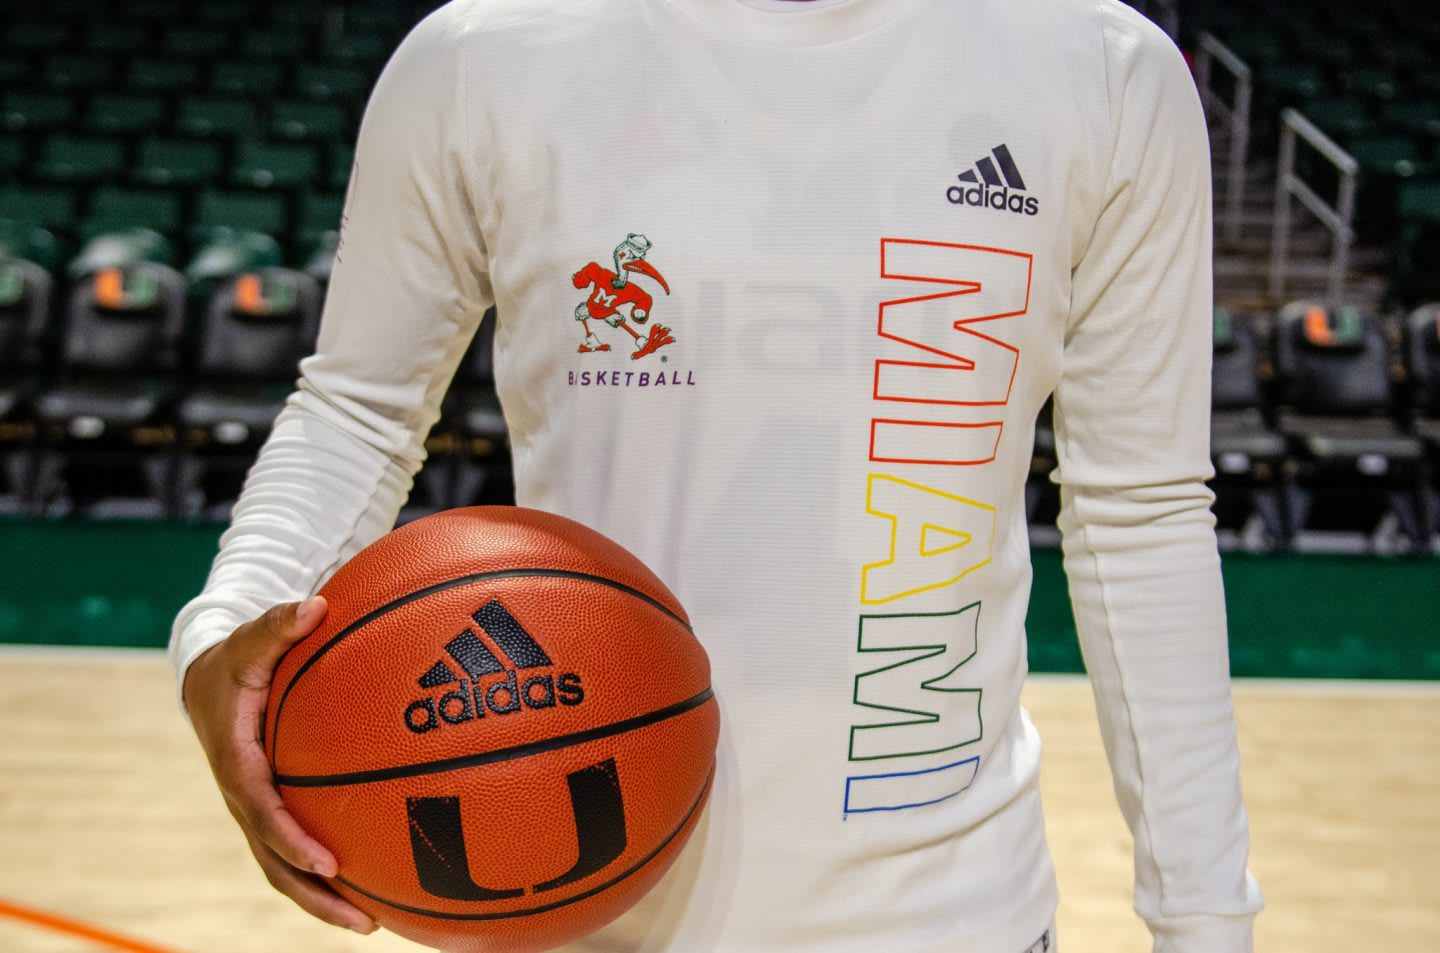 A women holding a basketball and wearing a white shirt with pride colored letters.